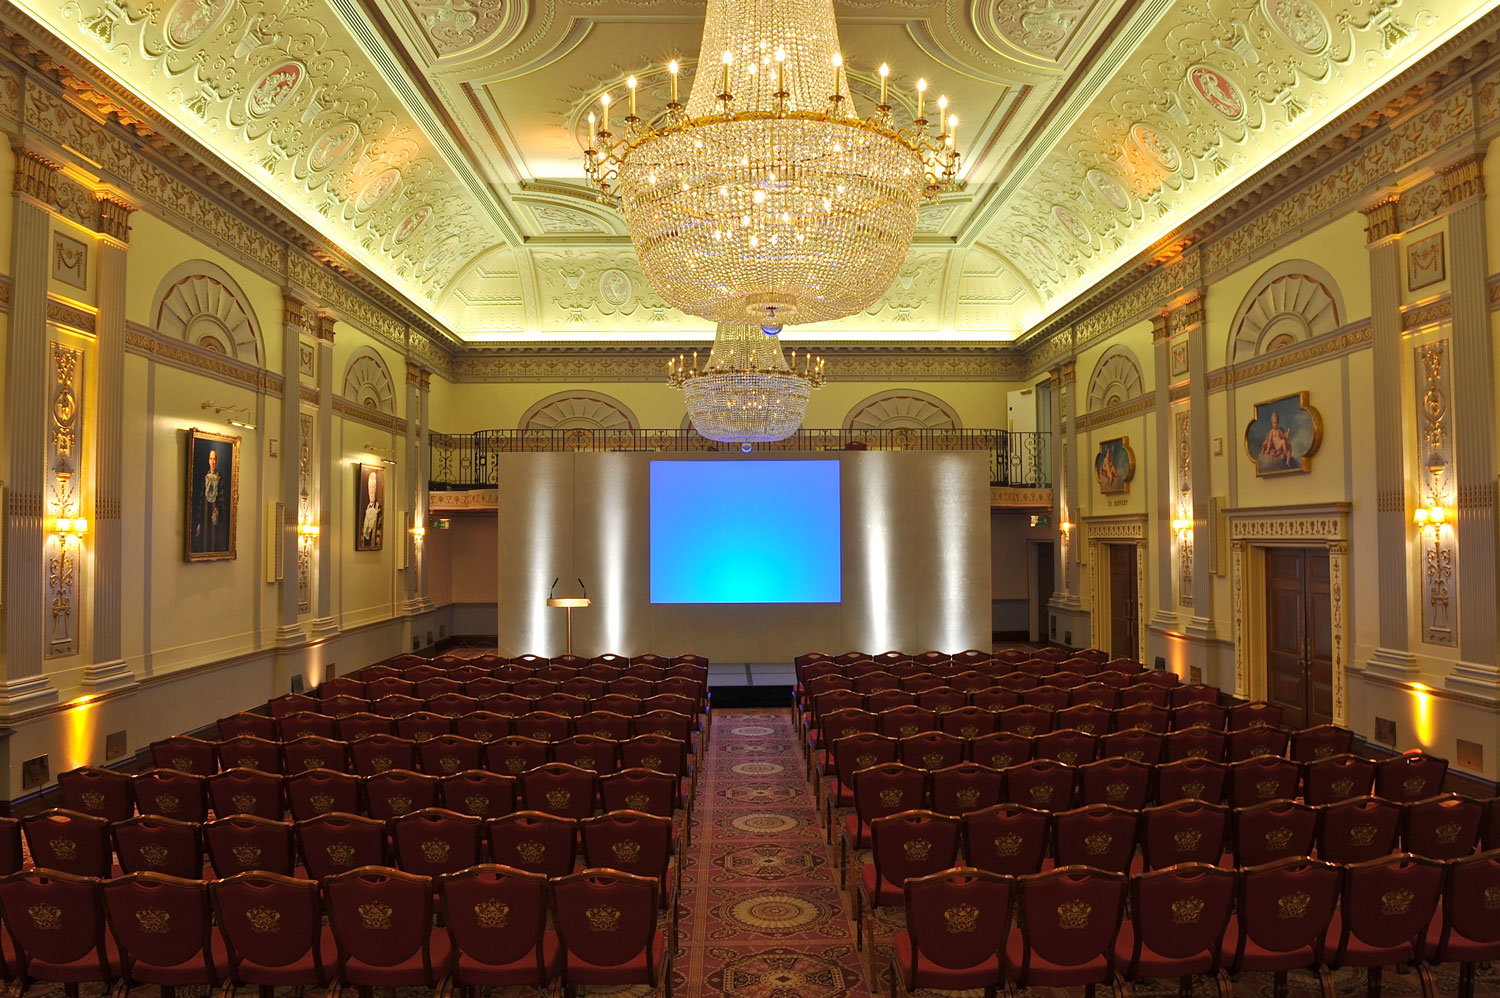 One London Wall Venue Hire EC2, meeting space, theatre style seating, chandeliers, stunning interior